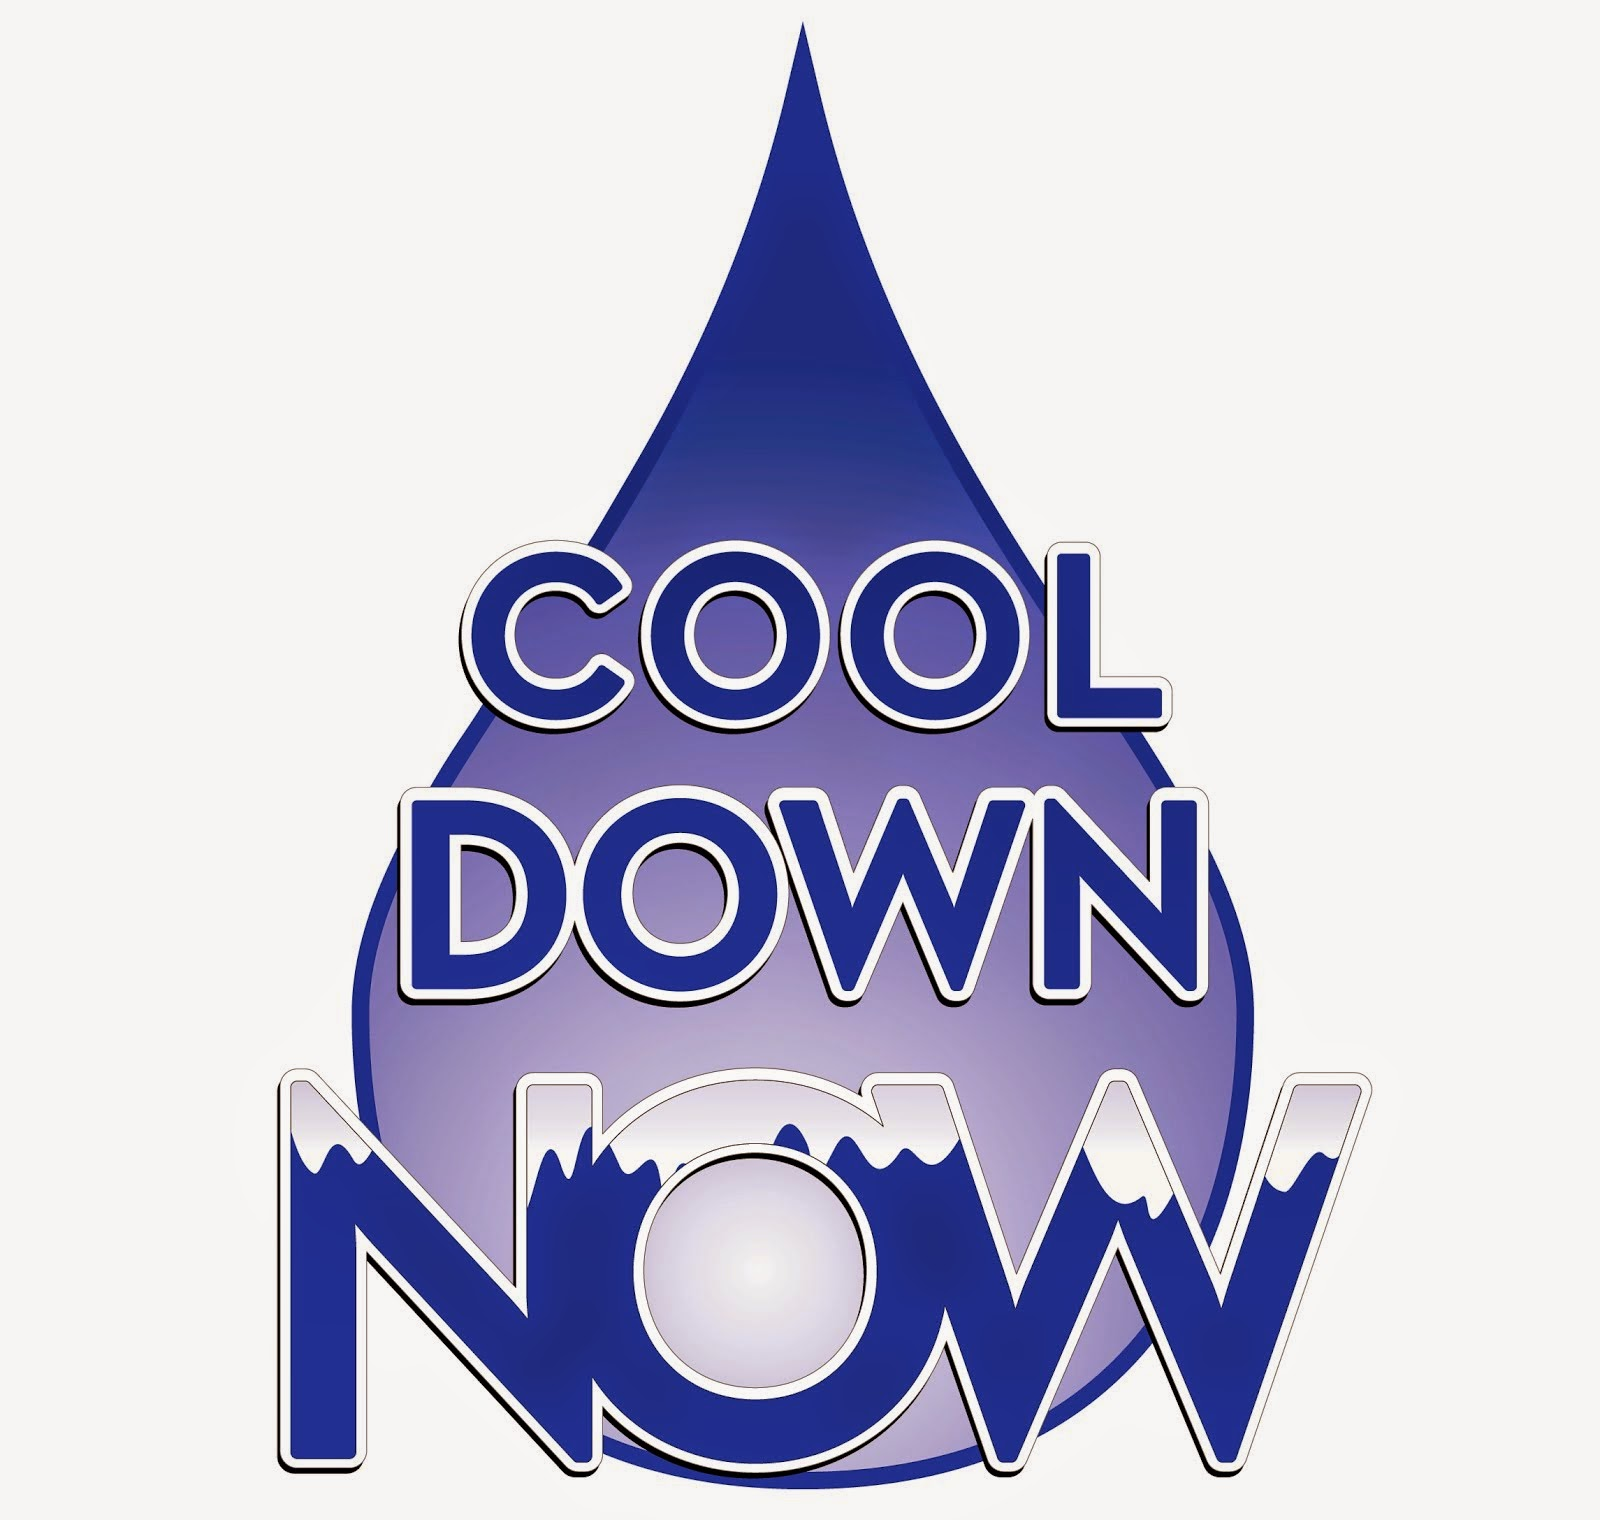 How Does Cool Down Now Work?